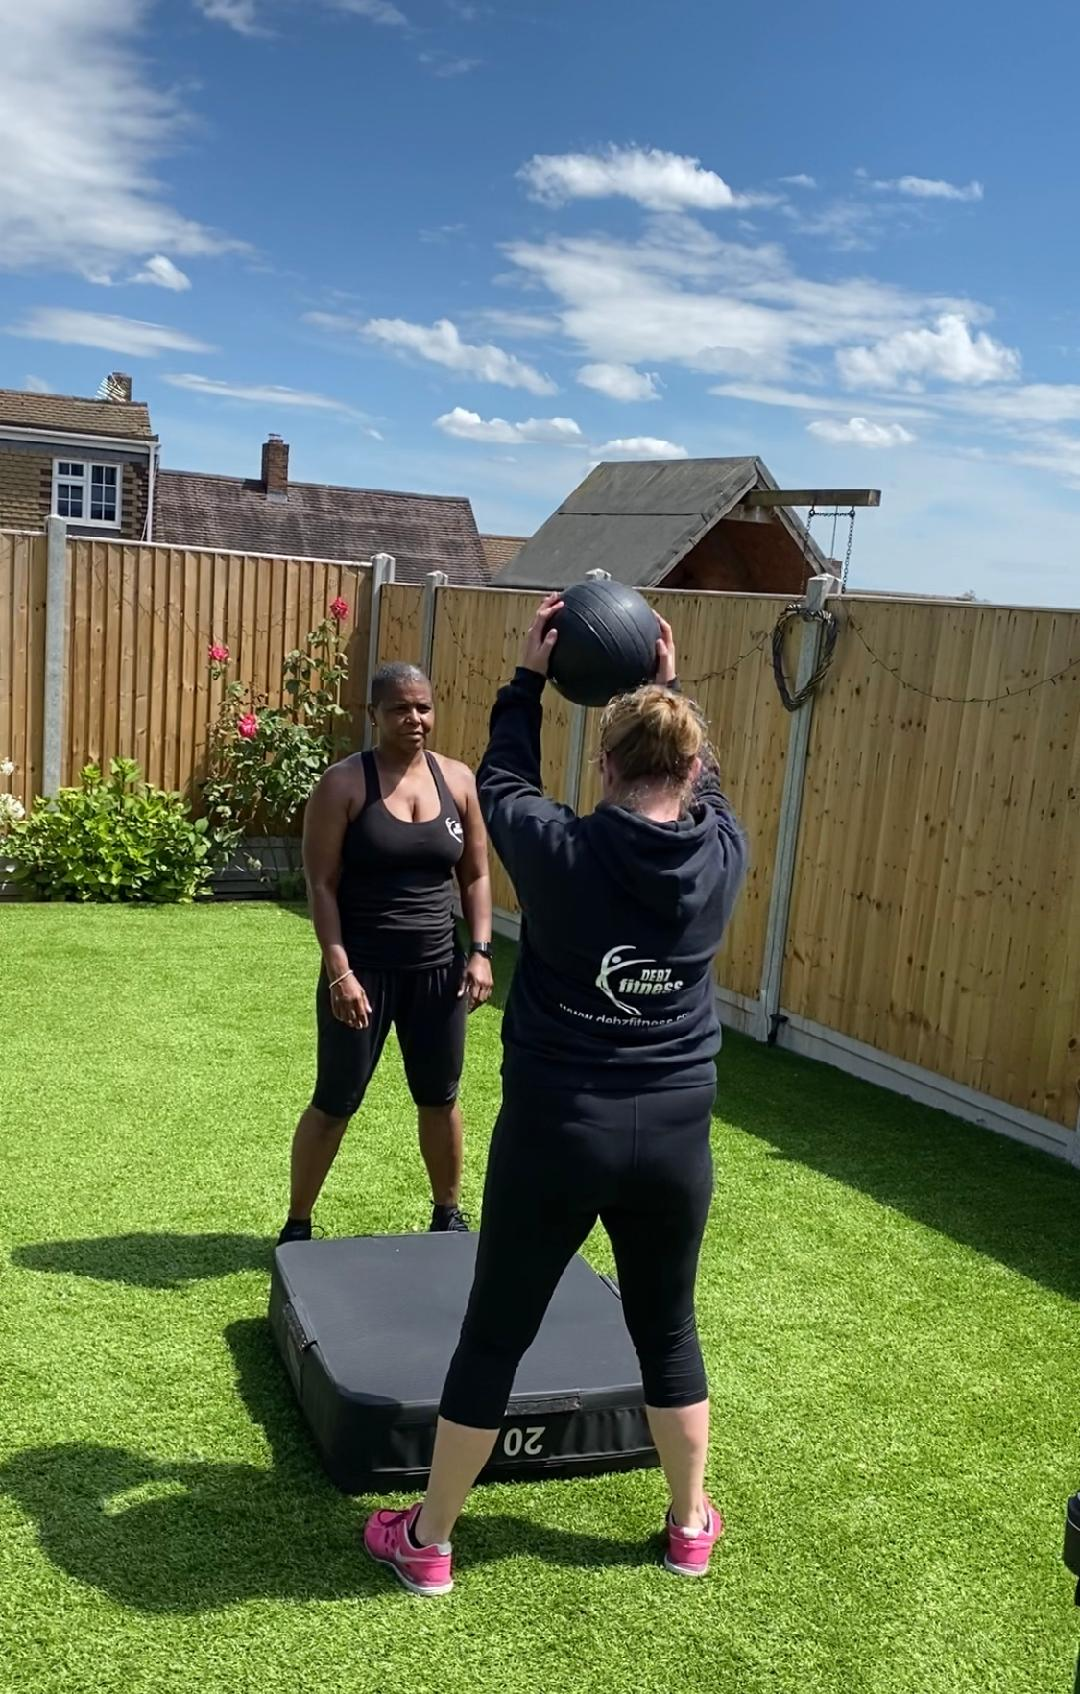 Personal training session in Essex